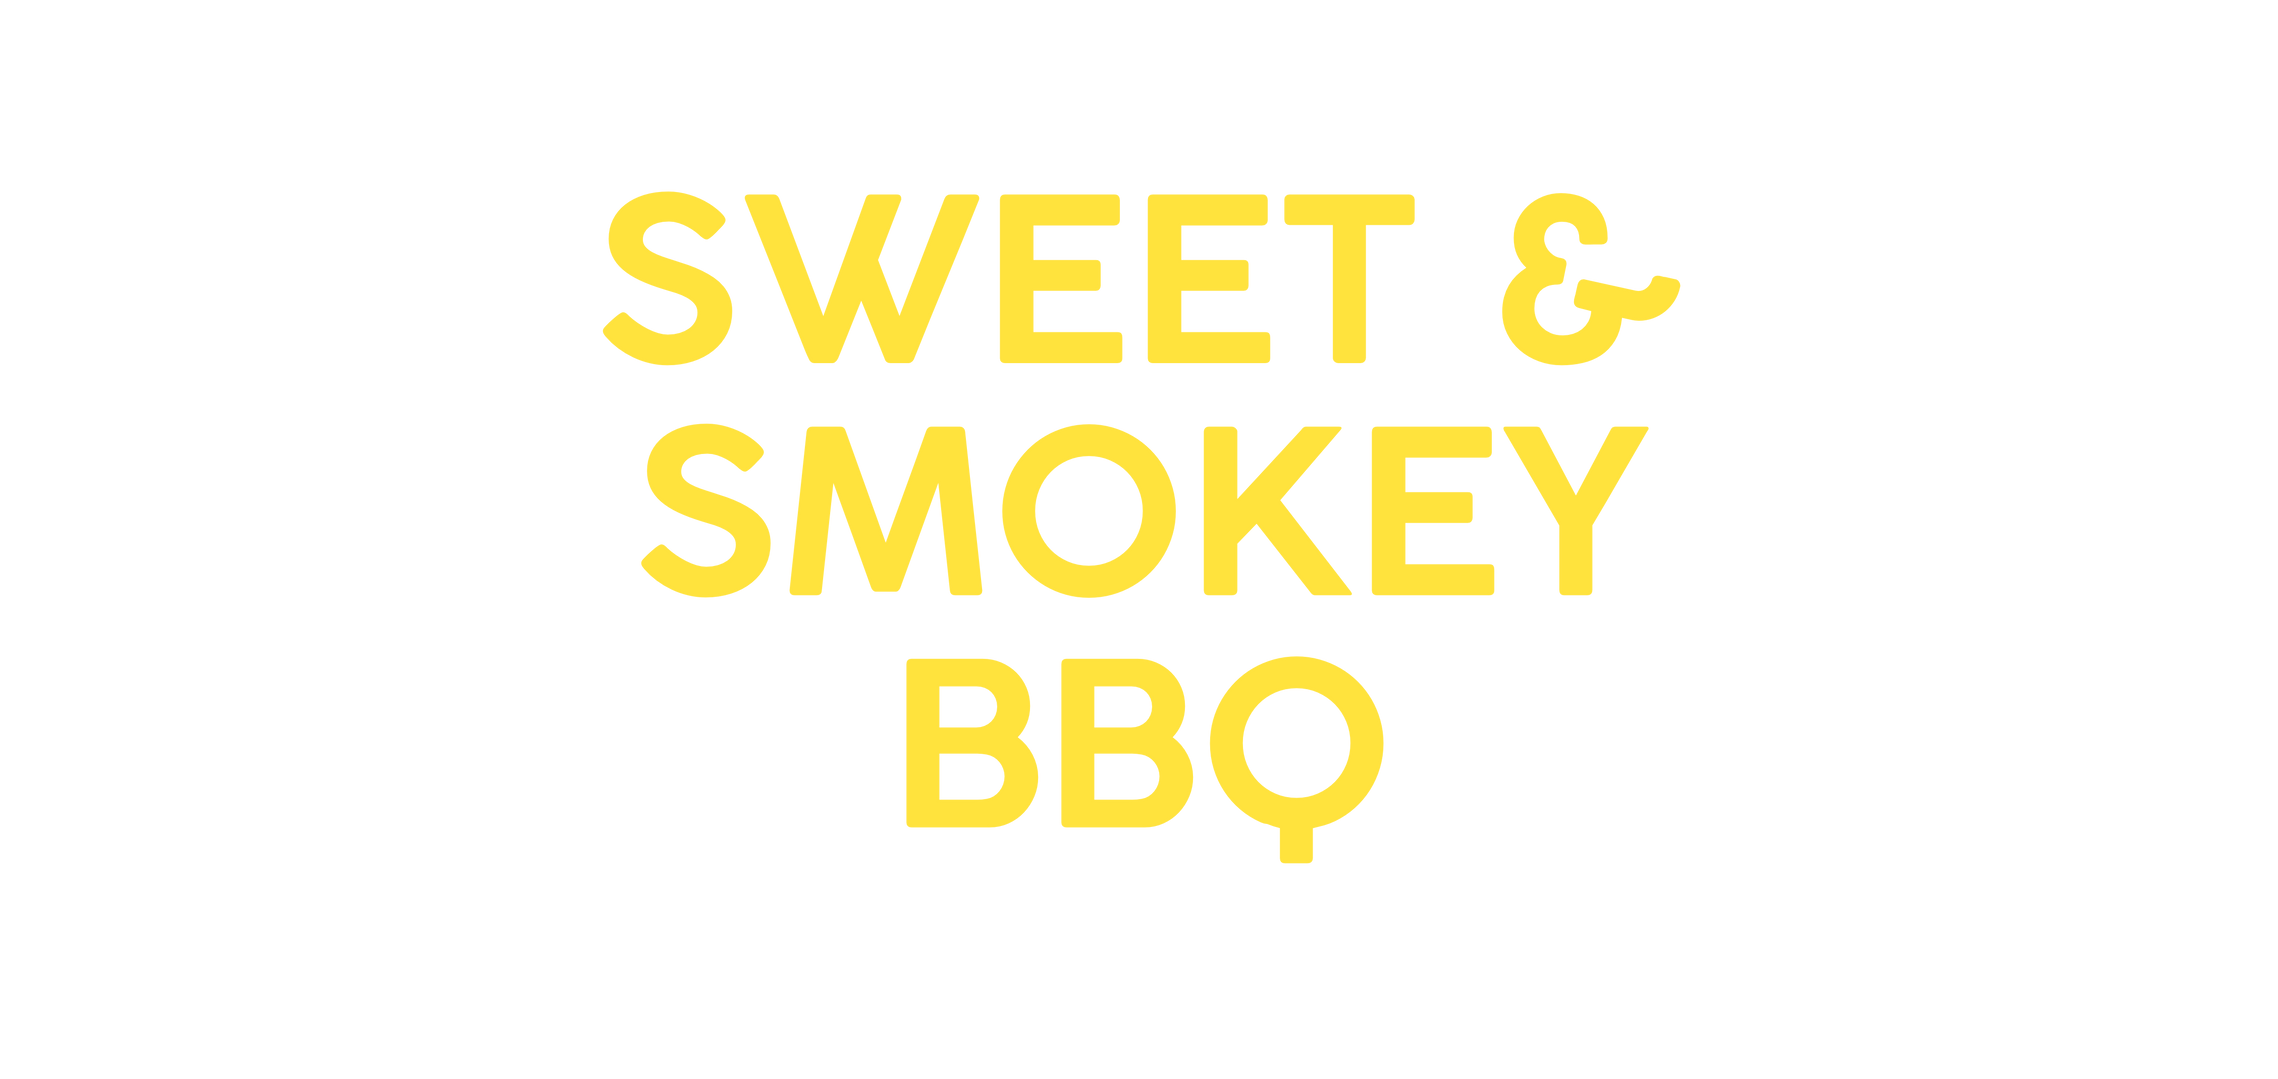 SWEET & SMOKEY BBQ.png